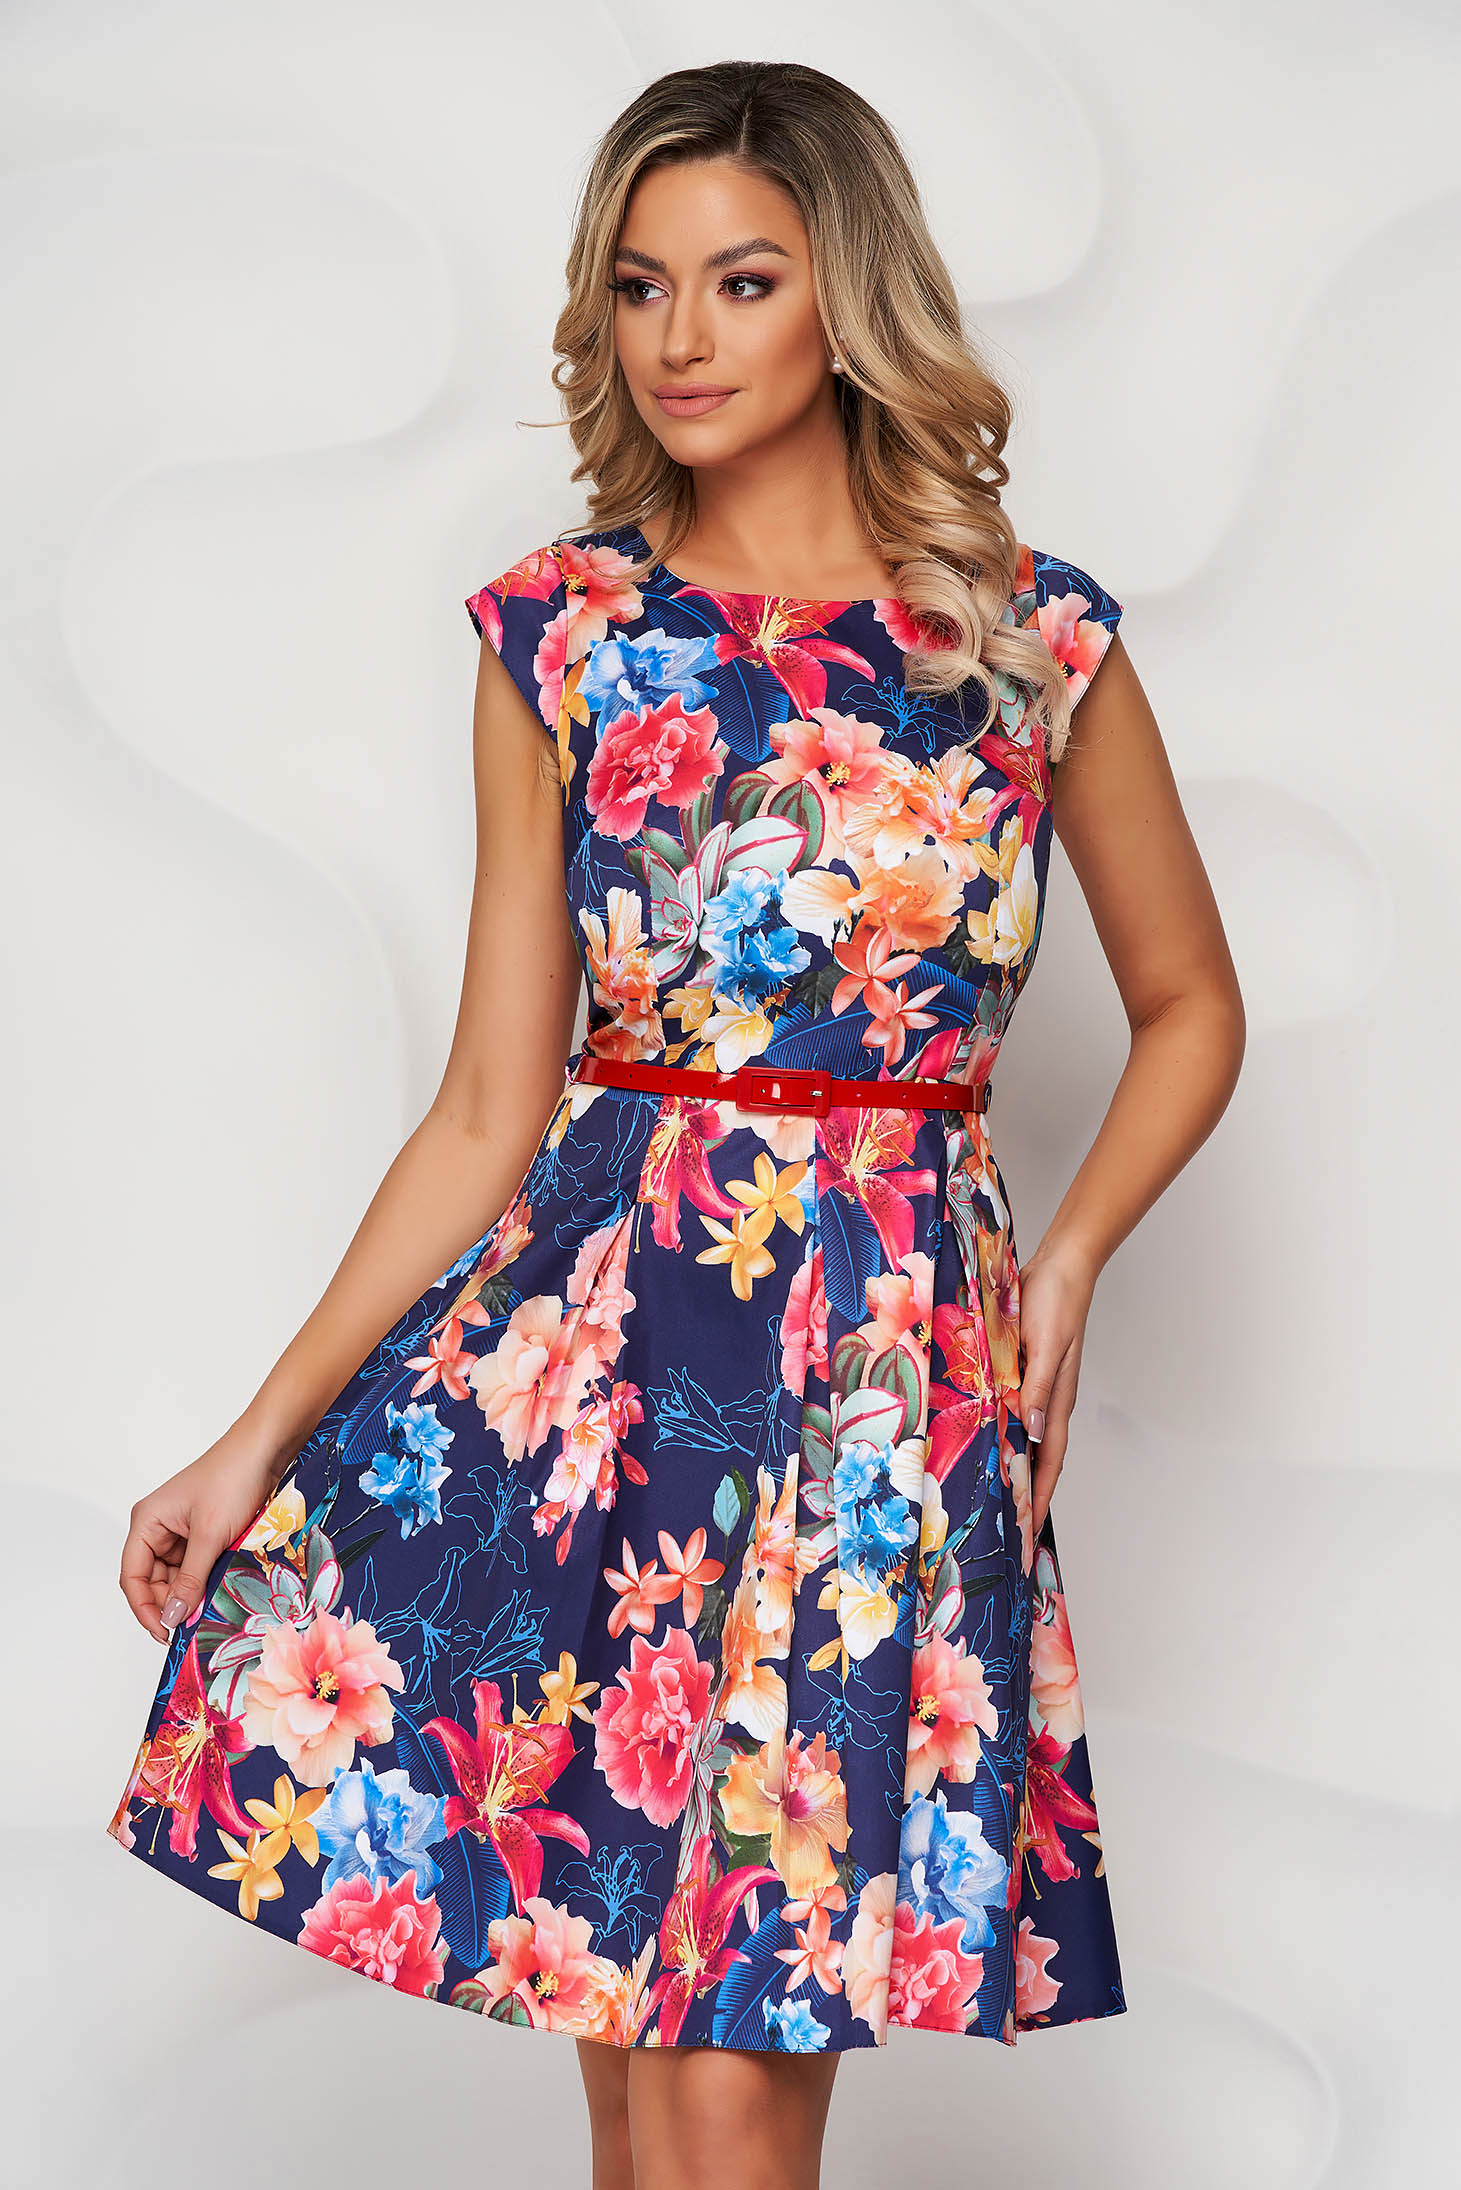 Darkblue dress with floral print cloche accessorized with belt slightly elastic fabric